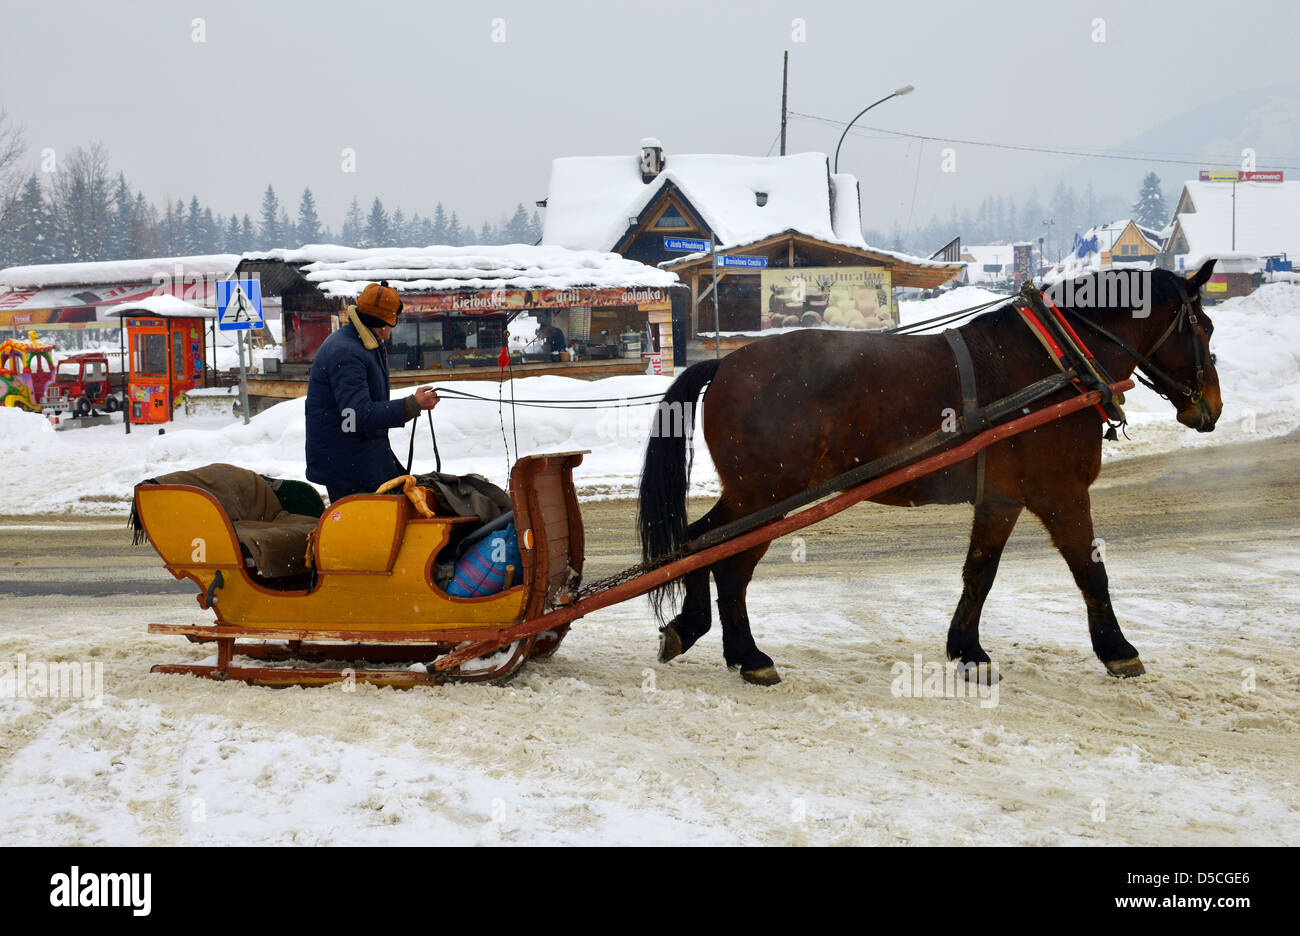 Horse drawn sleigh, Zakopane, Poland Stock Photo